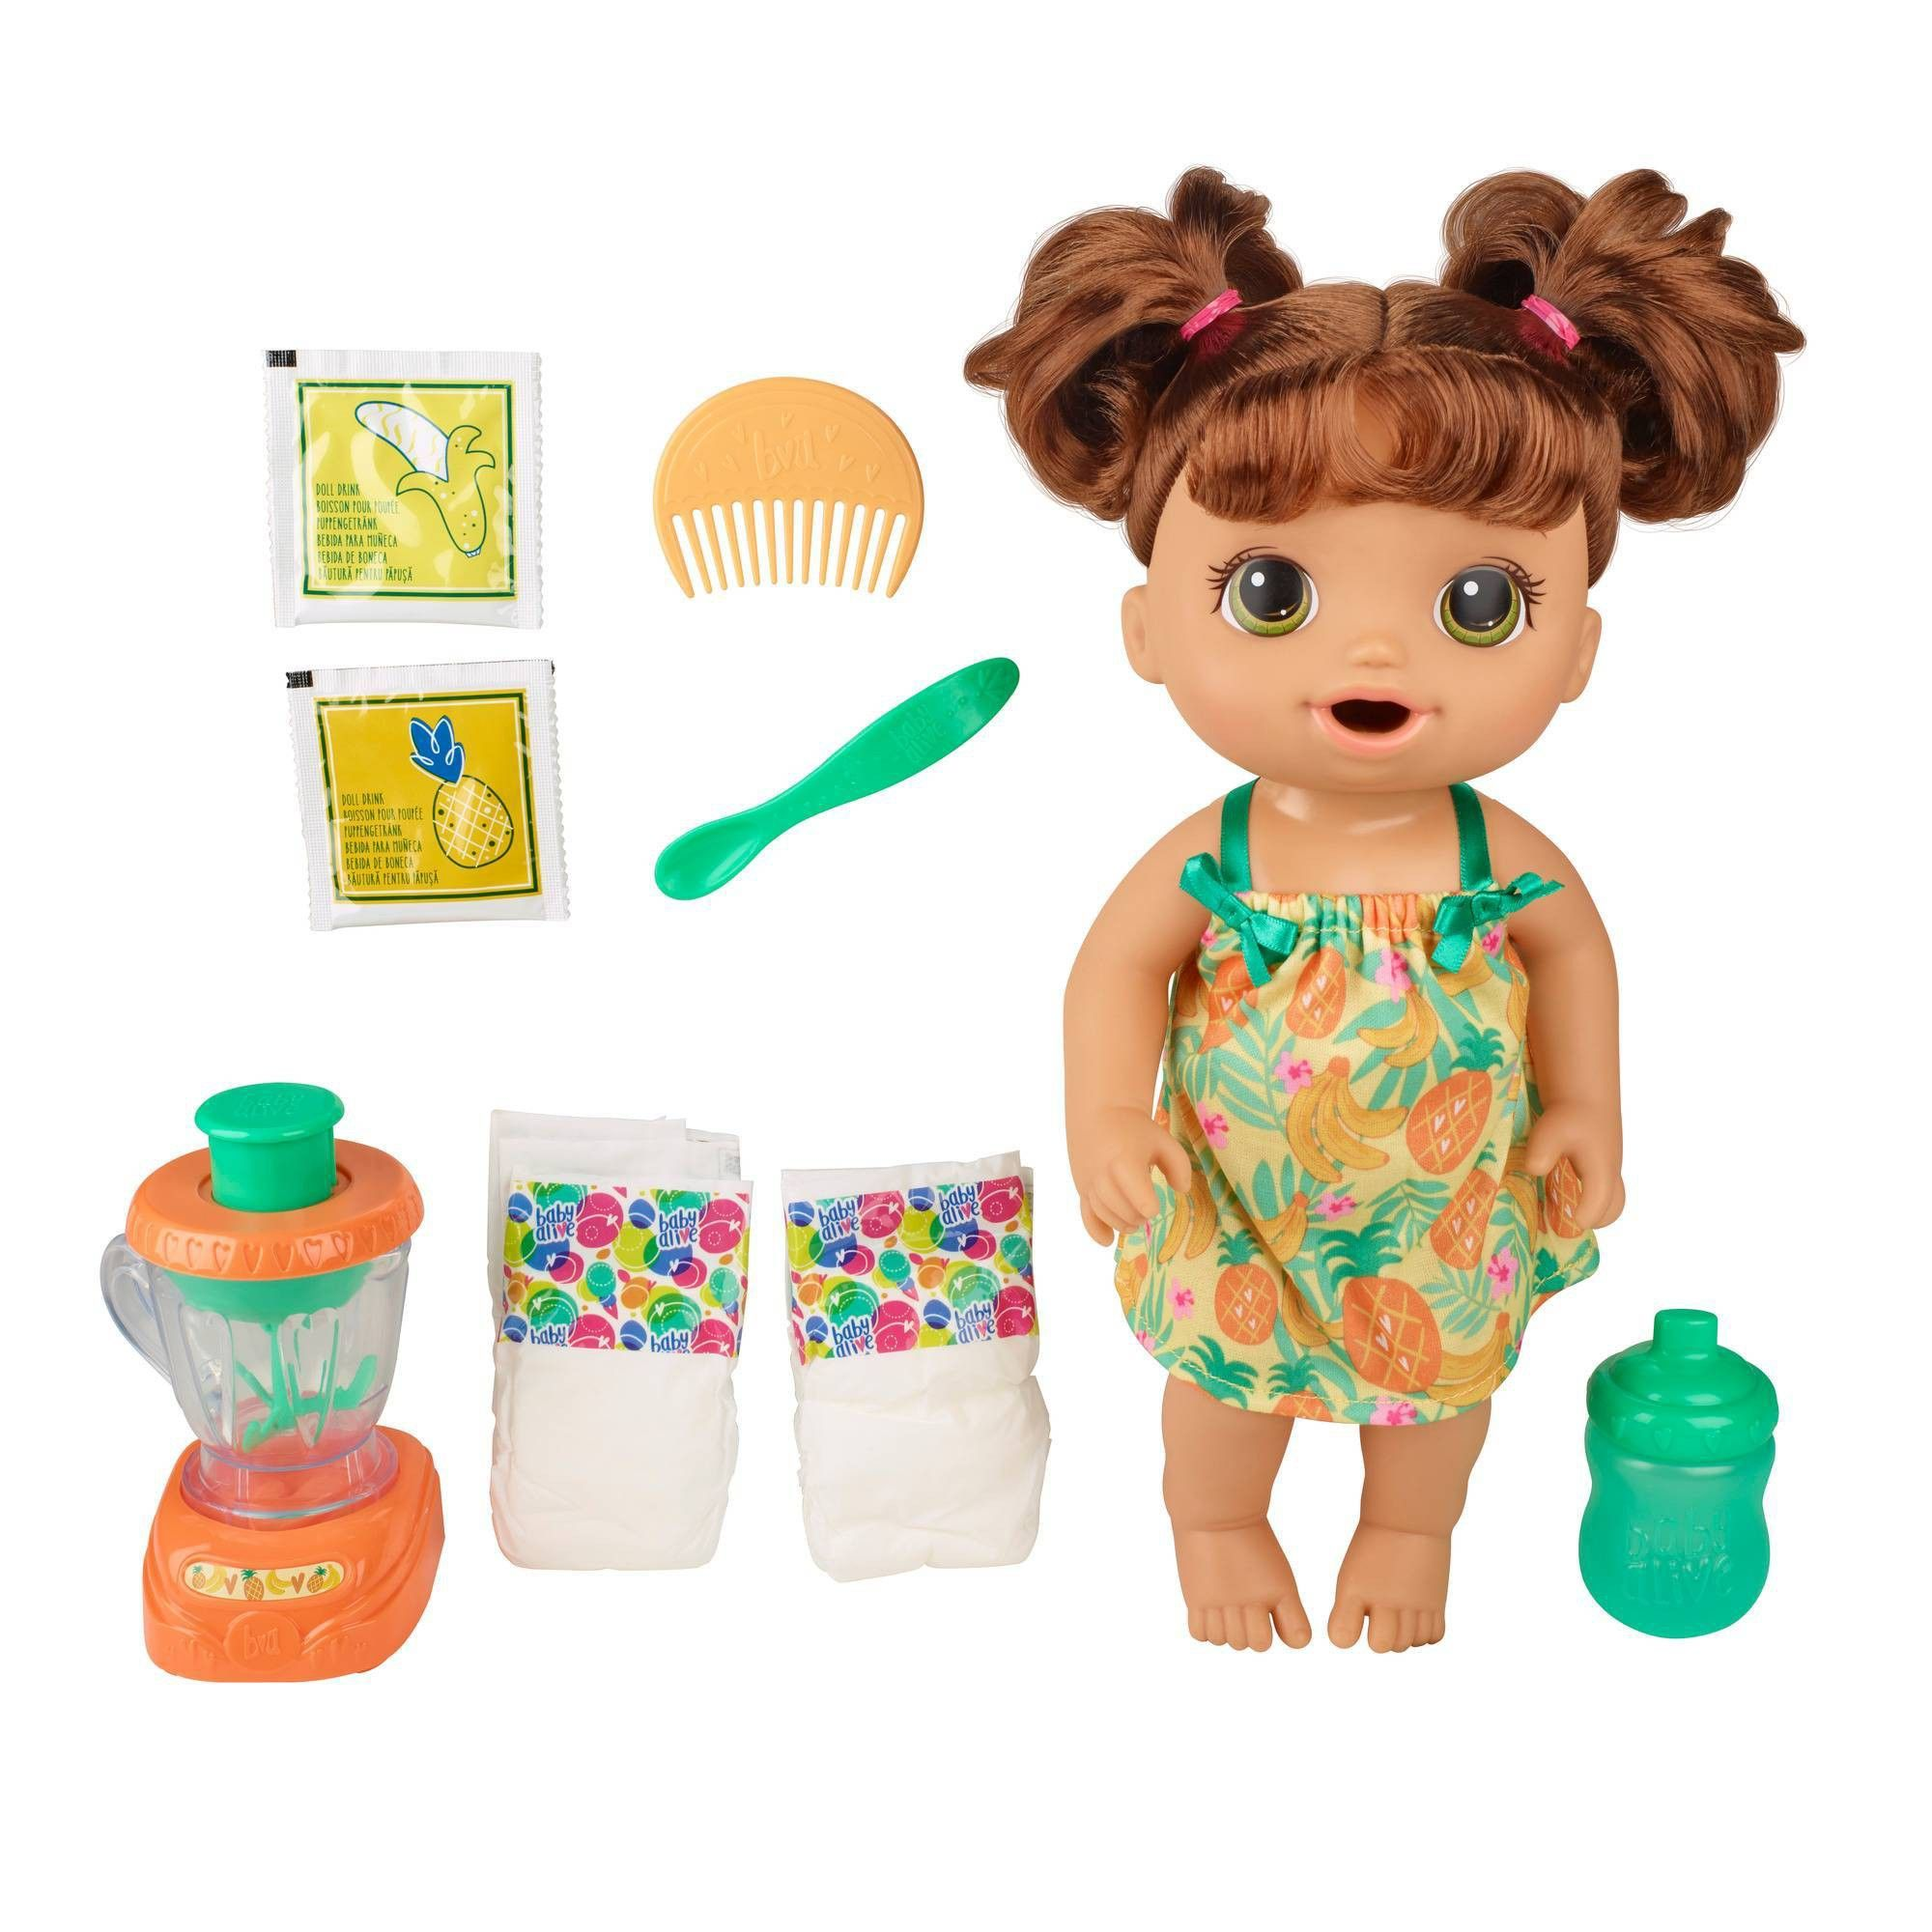 Baby Alive Magical Mixer Baby Doll Pineapple Treat In 2020 Interactive Baby Dolls Baby Alive Baby Alive Dolls